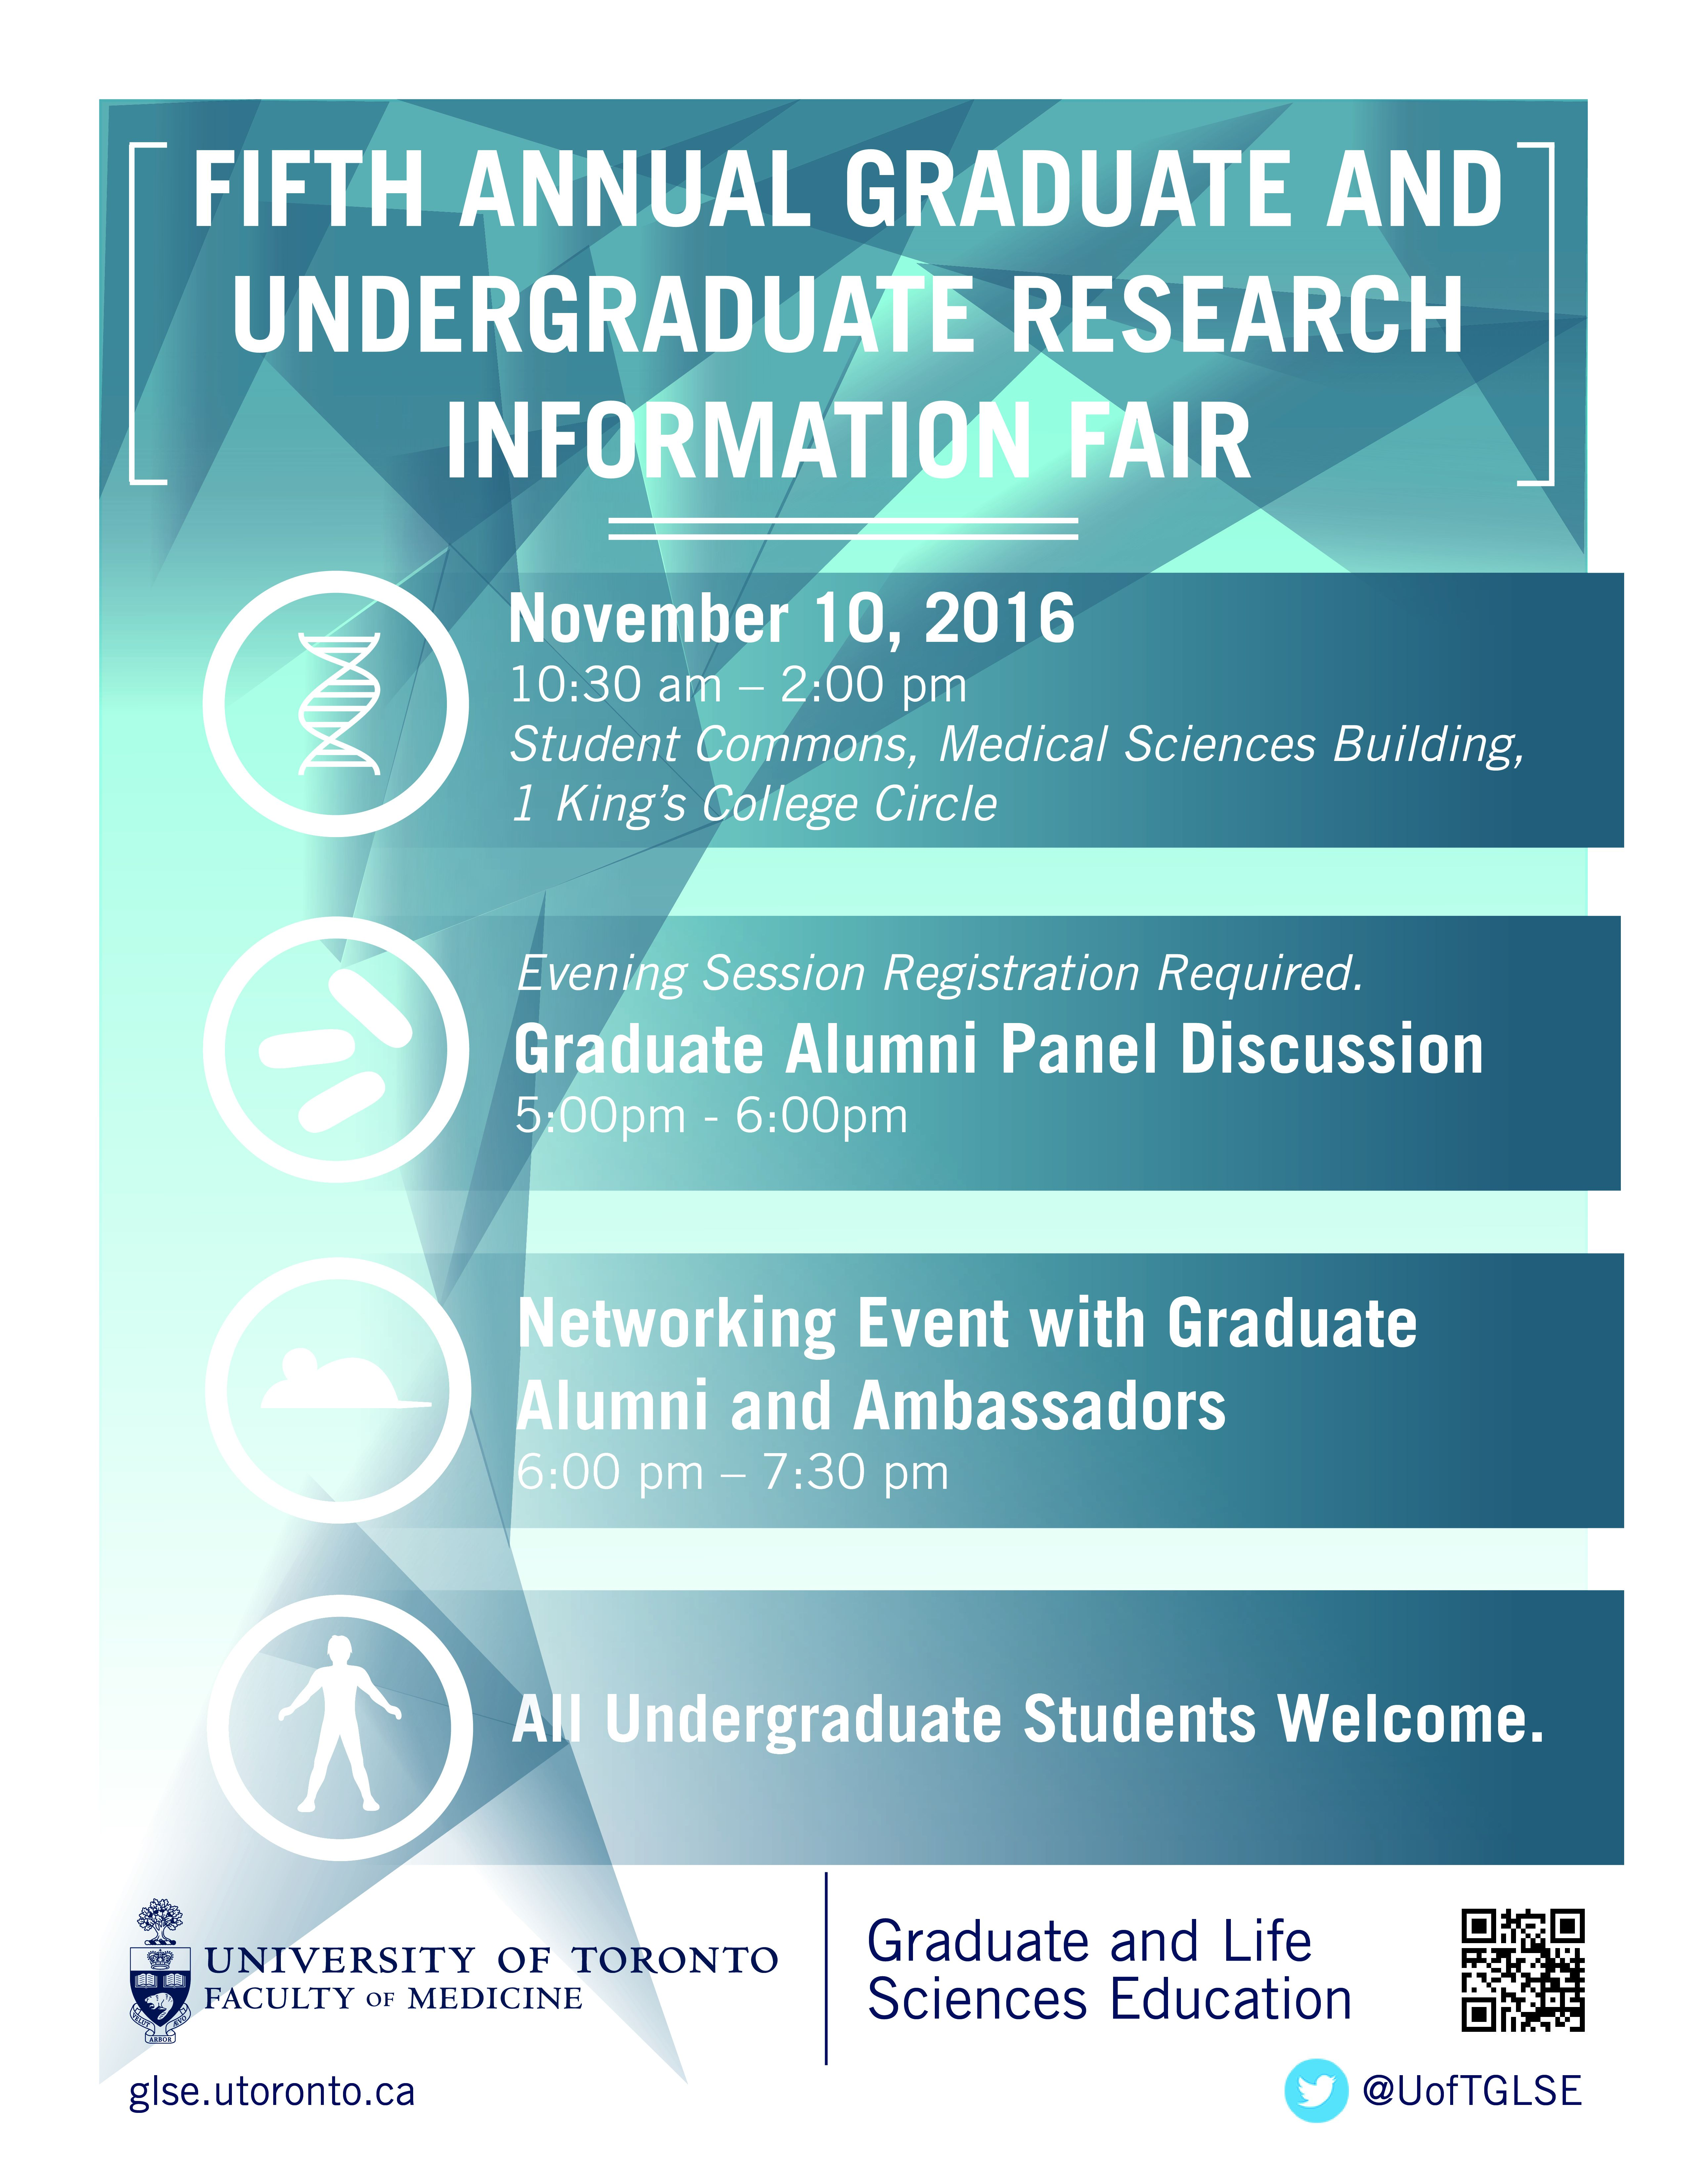 Research Information Fair